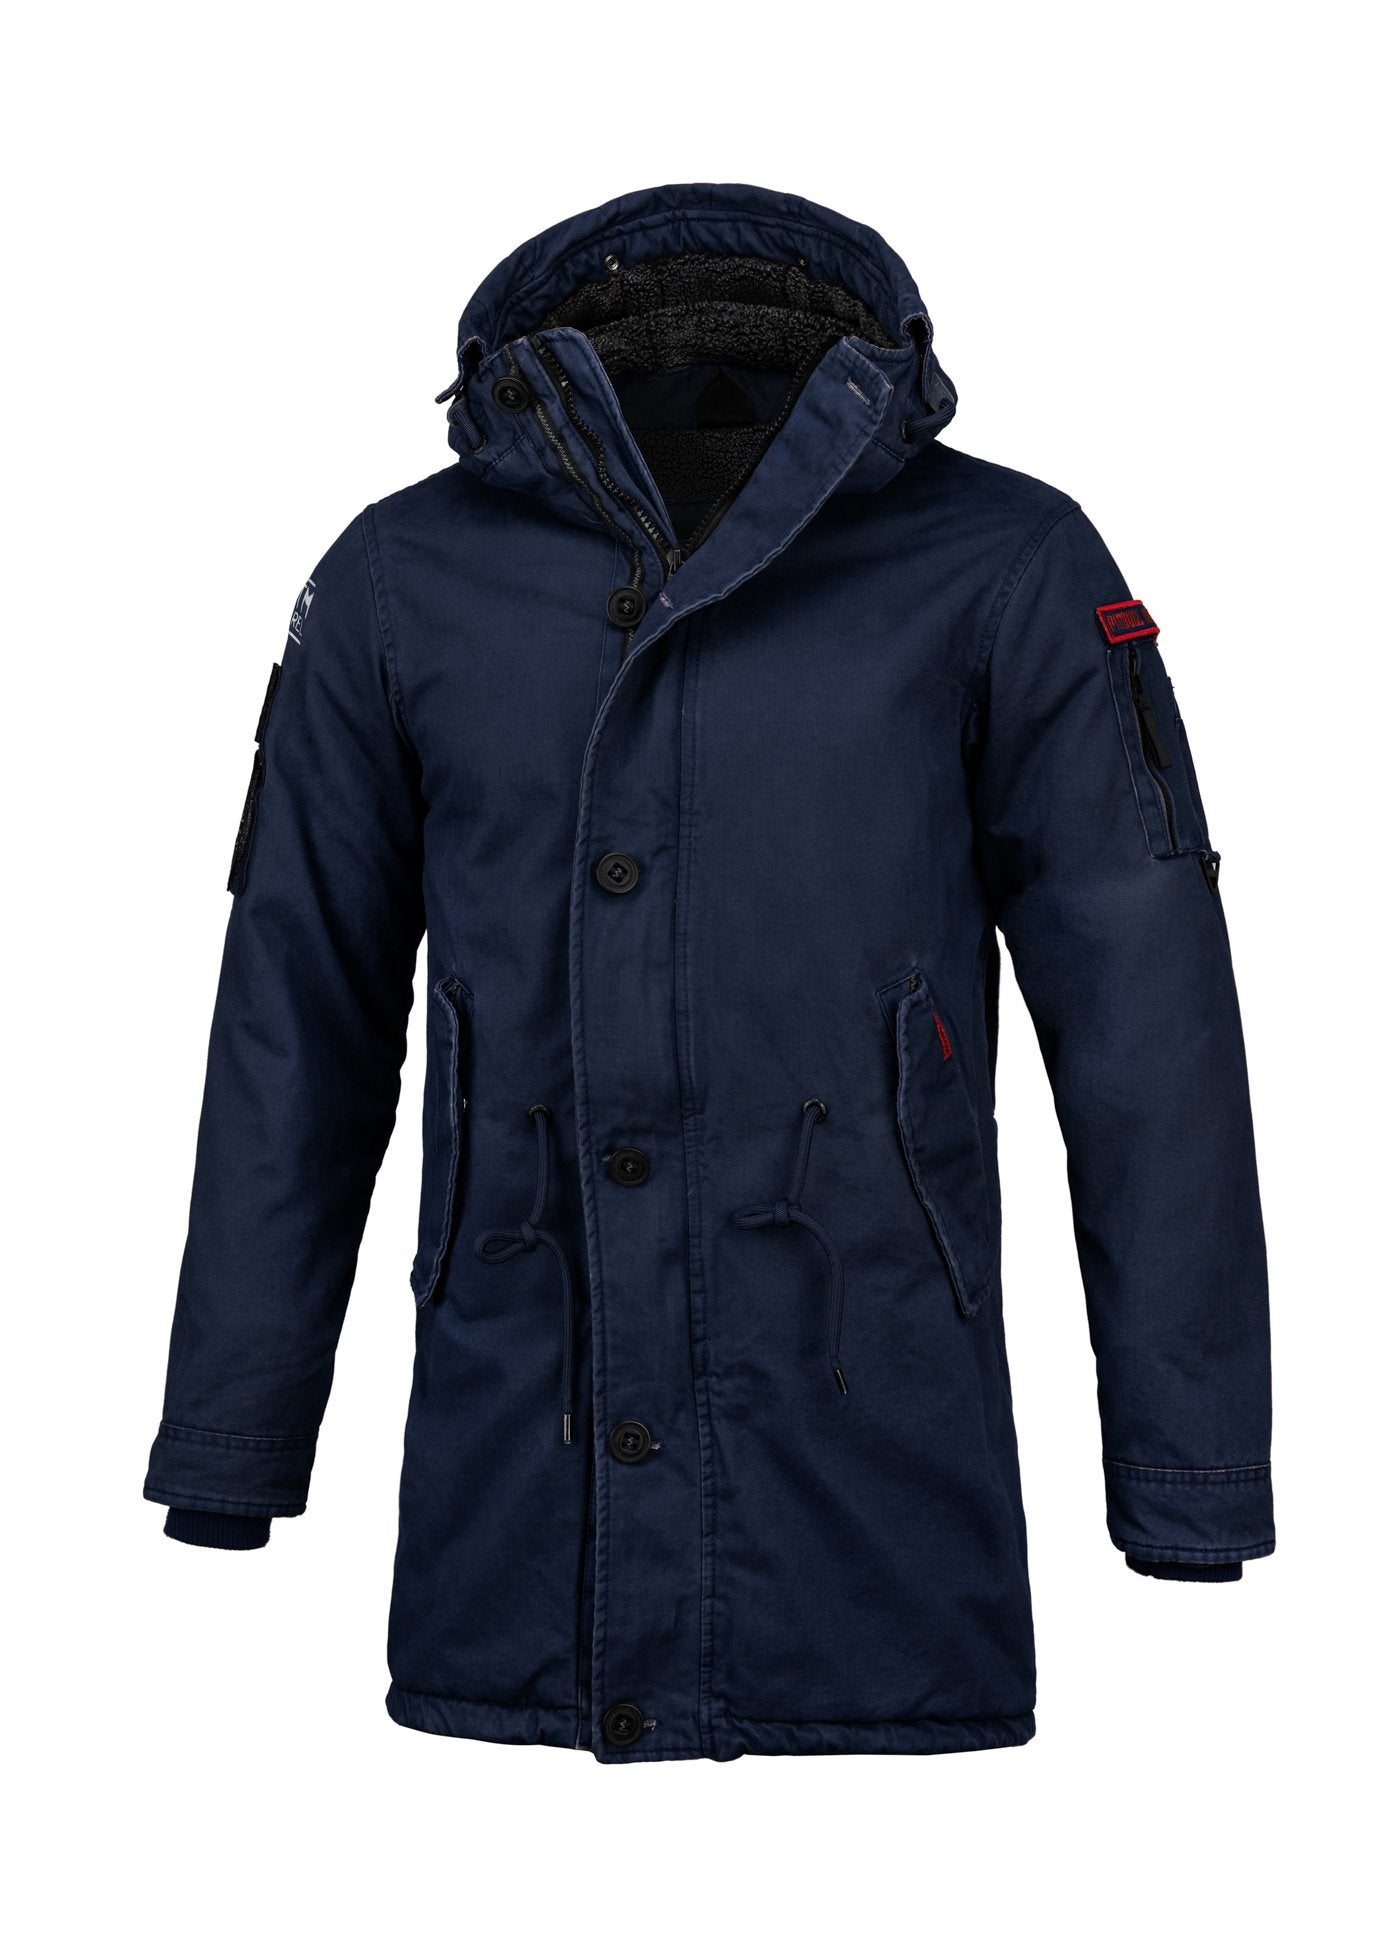 WINTER JACKET HEMLOCK III DARK NAVY - pitbullwestcoast